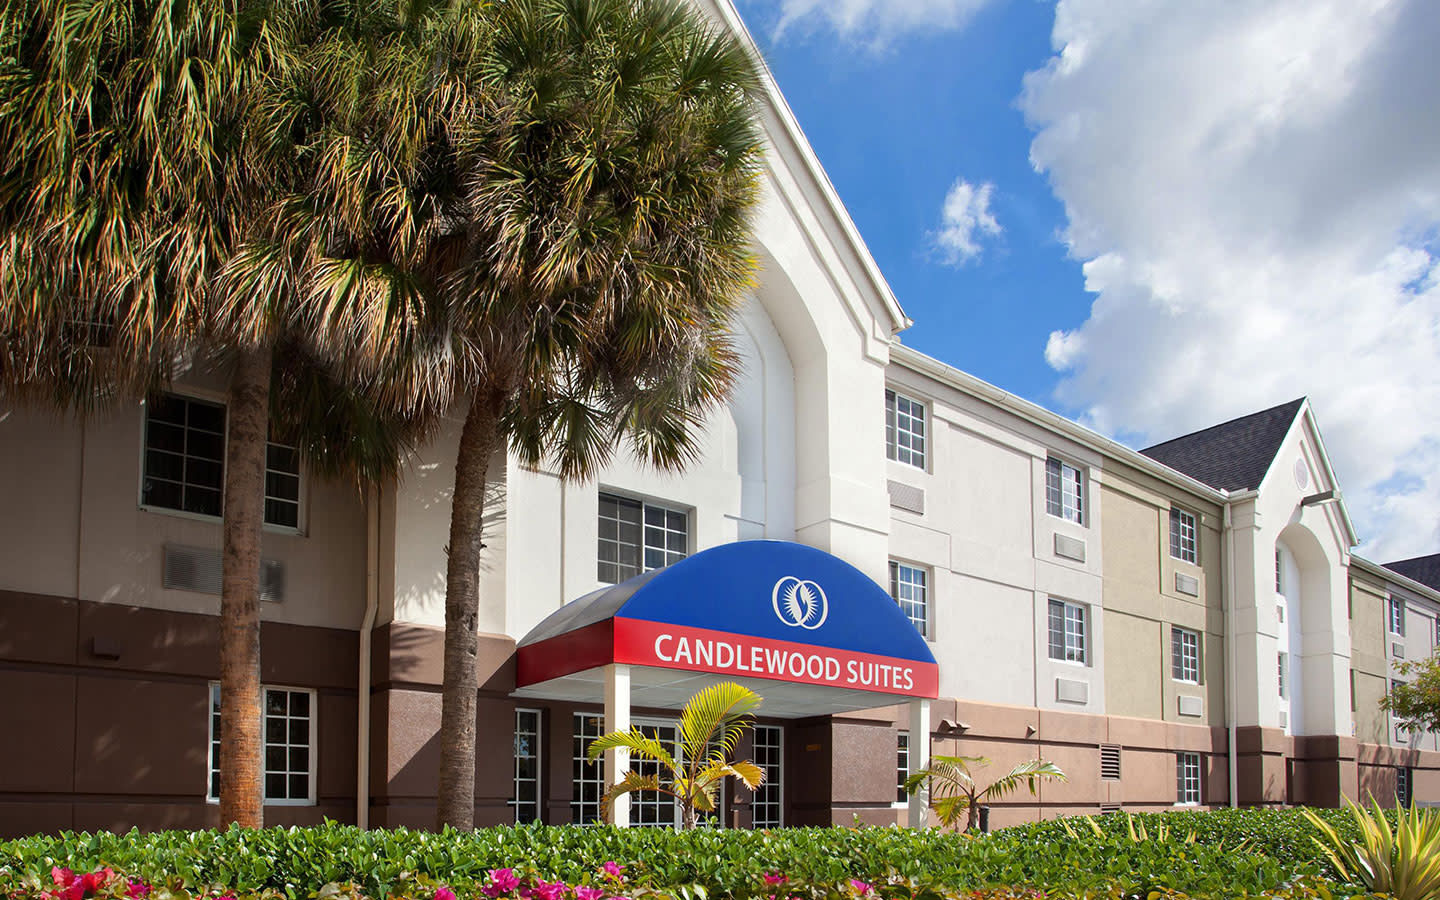 Candlewood Suites facade